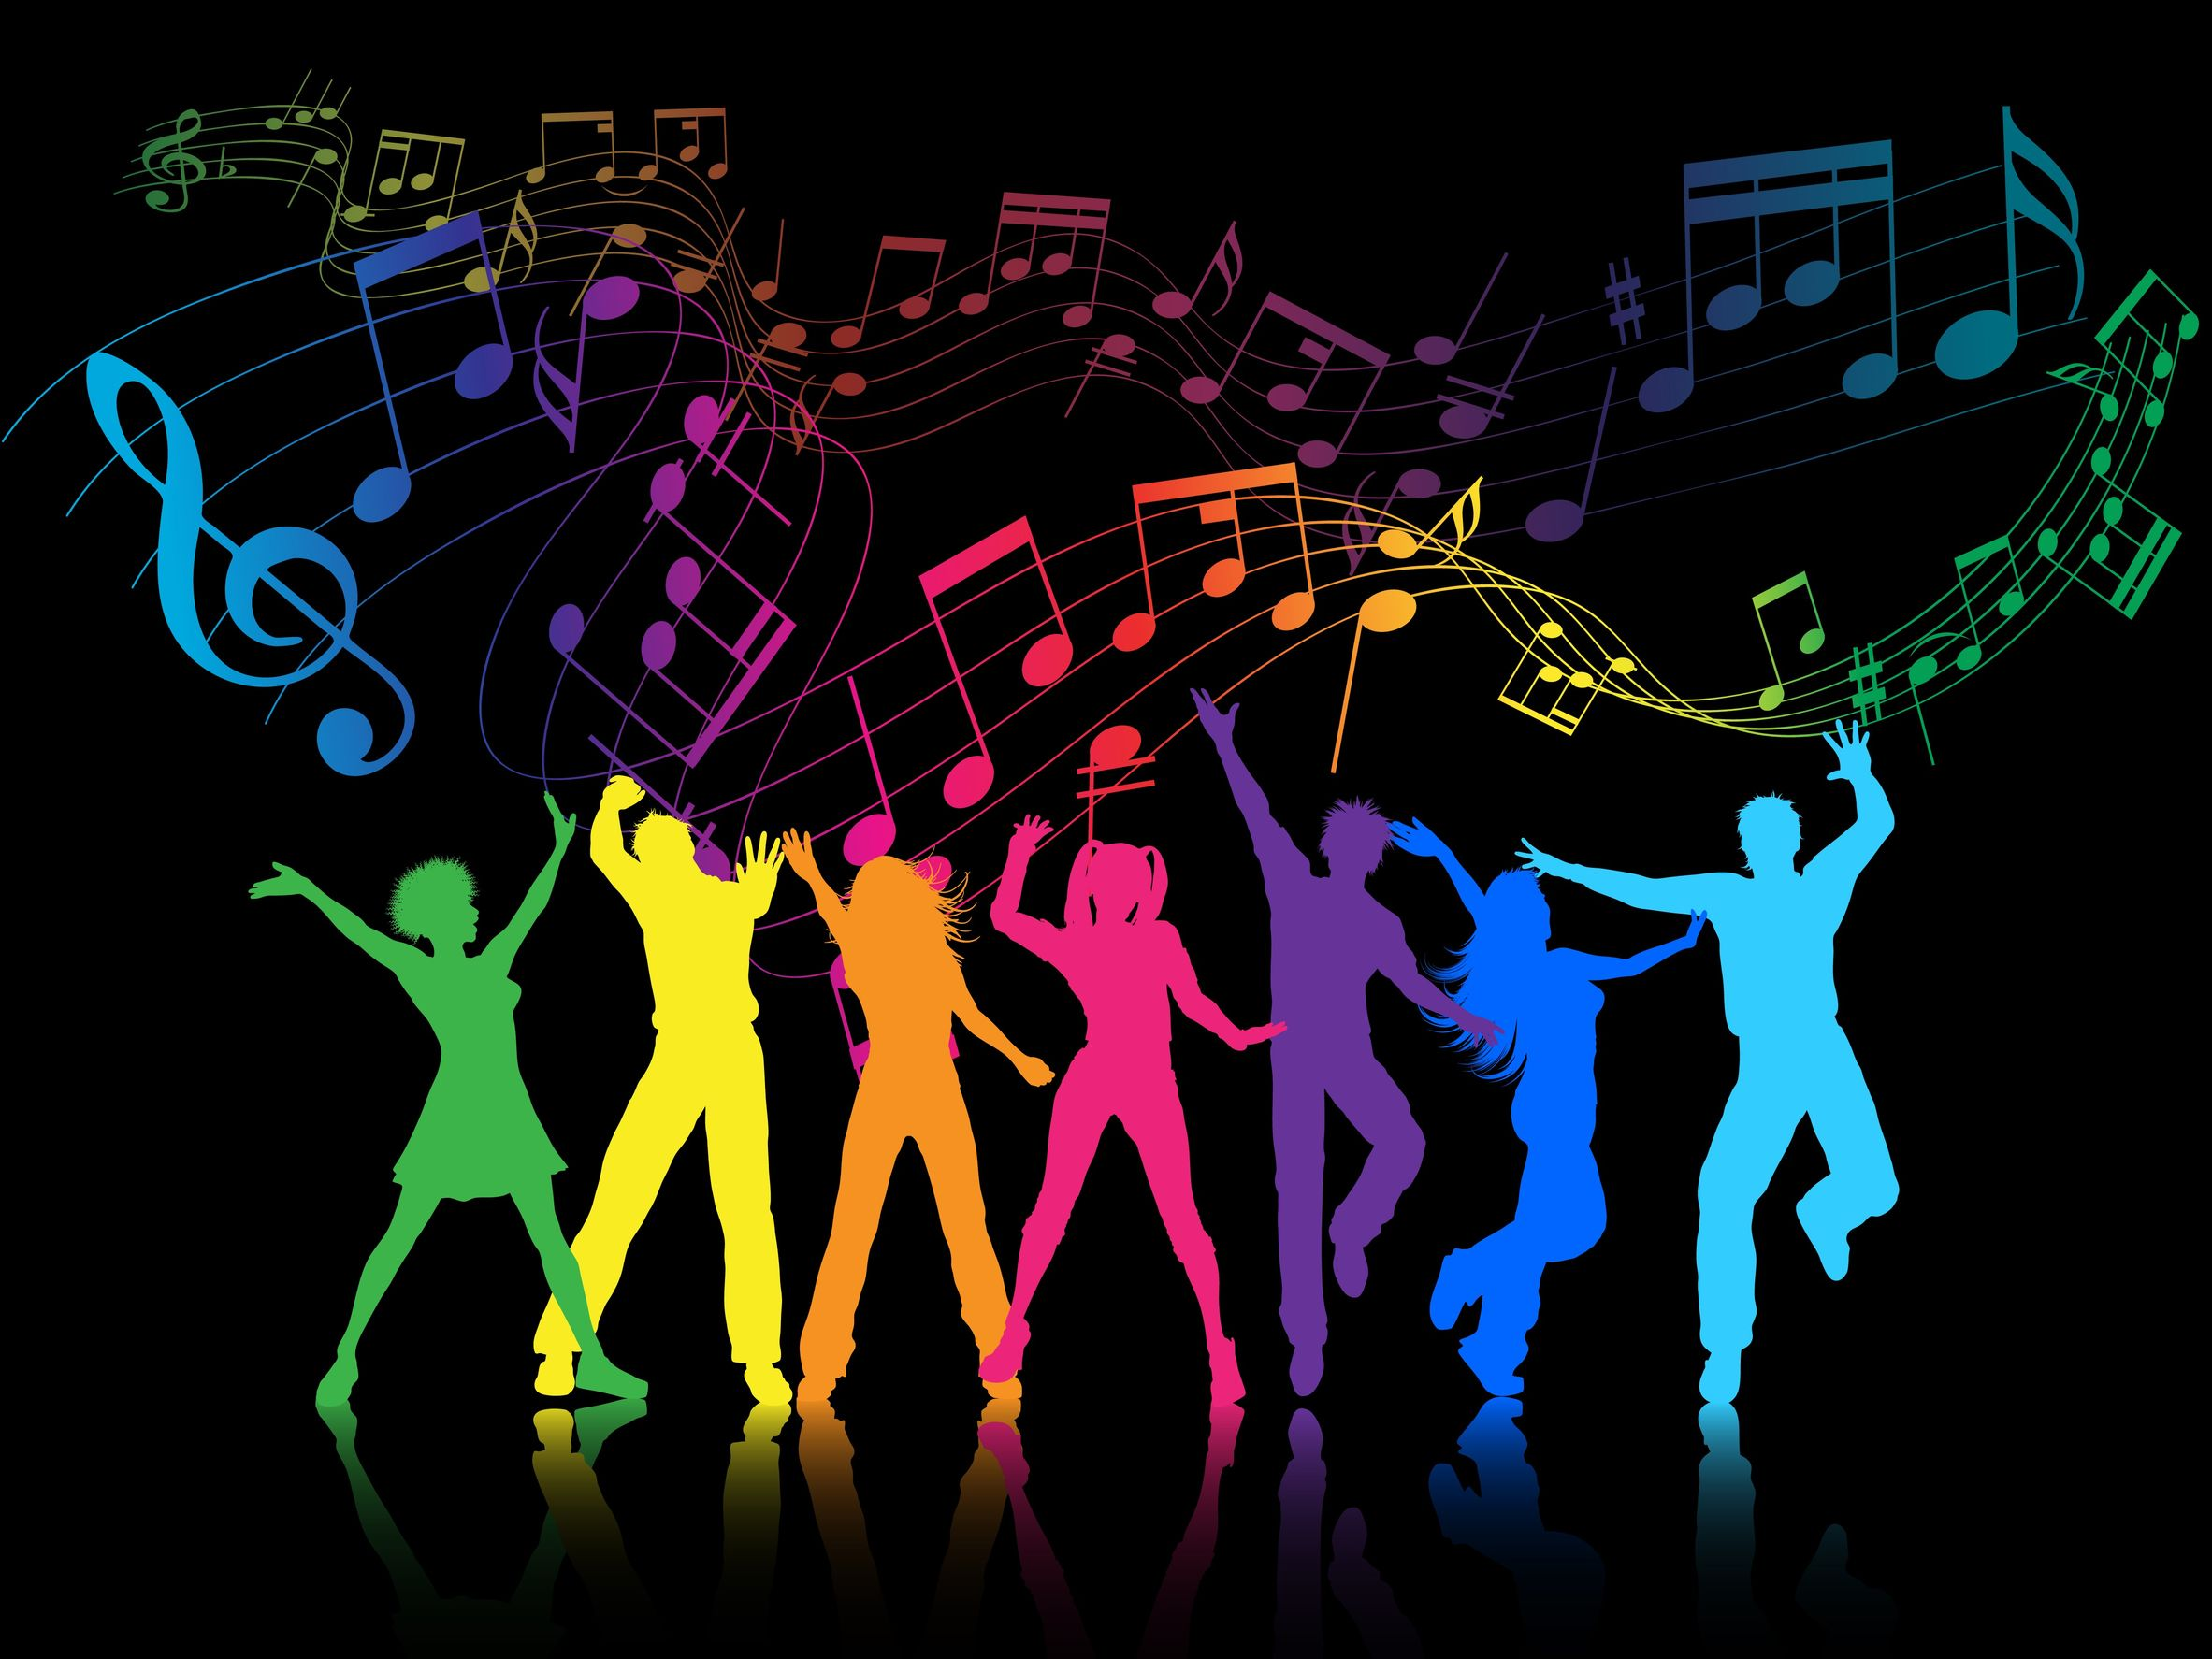 colorful-music-wallpapers-23.jpg